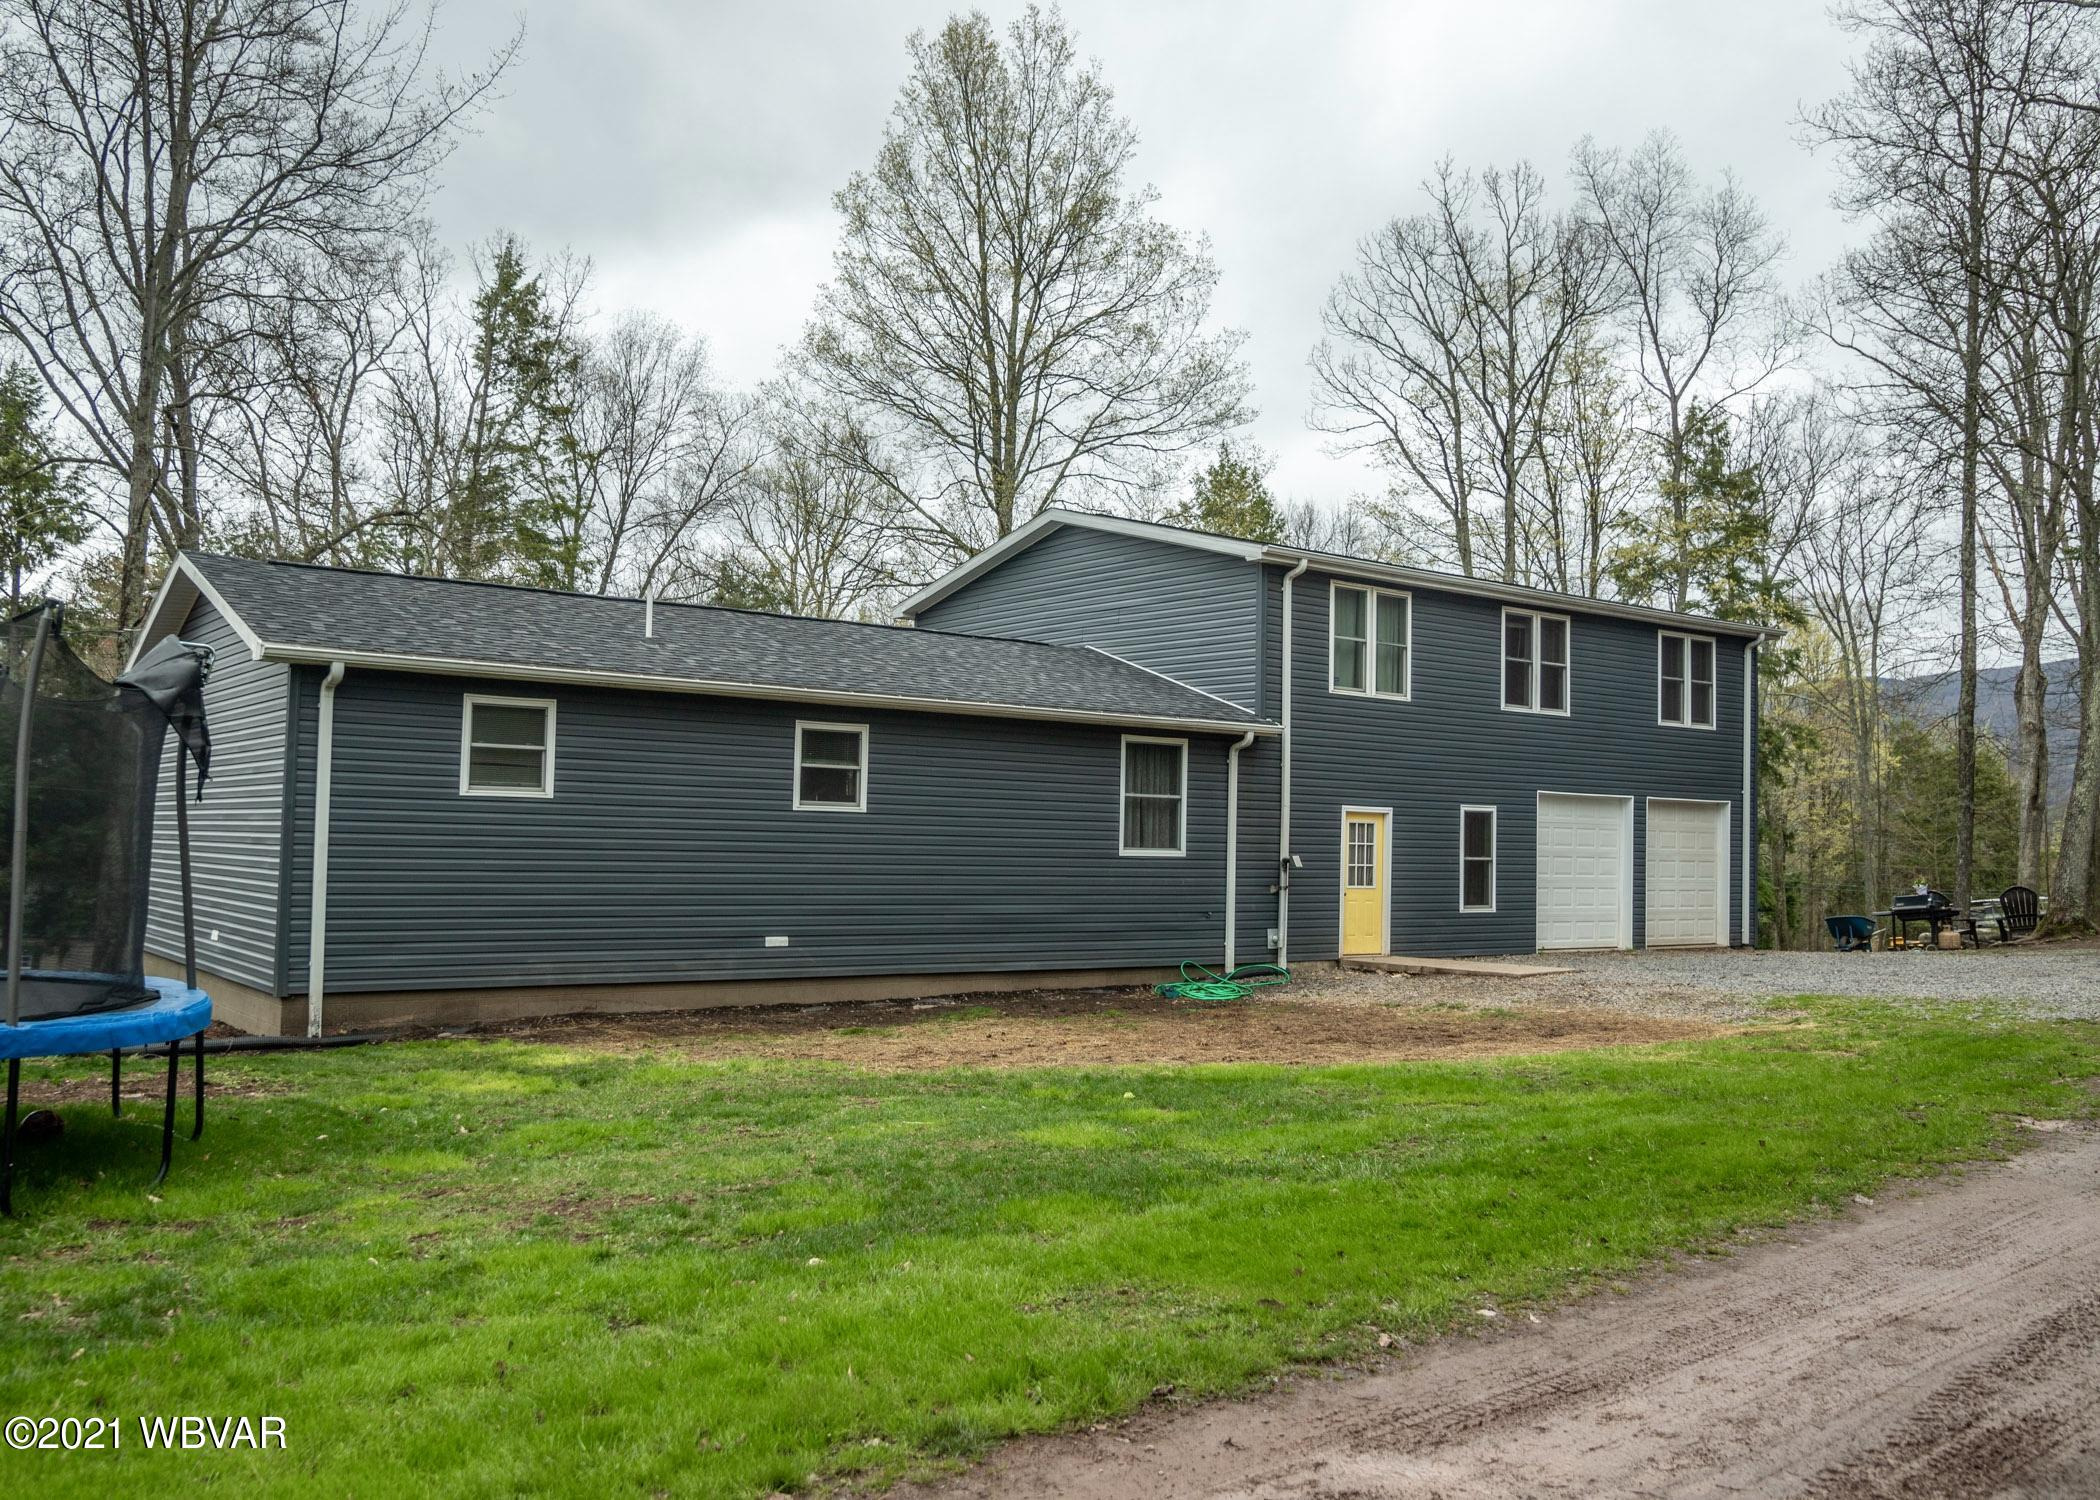 732 LAKEVIEW DRIVE, Muncy Valley, PA 17758, 5 Bedrooms Bedrooms, ,2 BathroomsBathrooms,Residential,For sale,LAKEVIEW,WB-92444